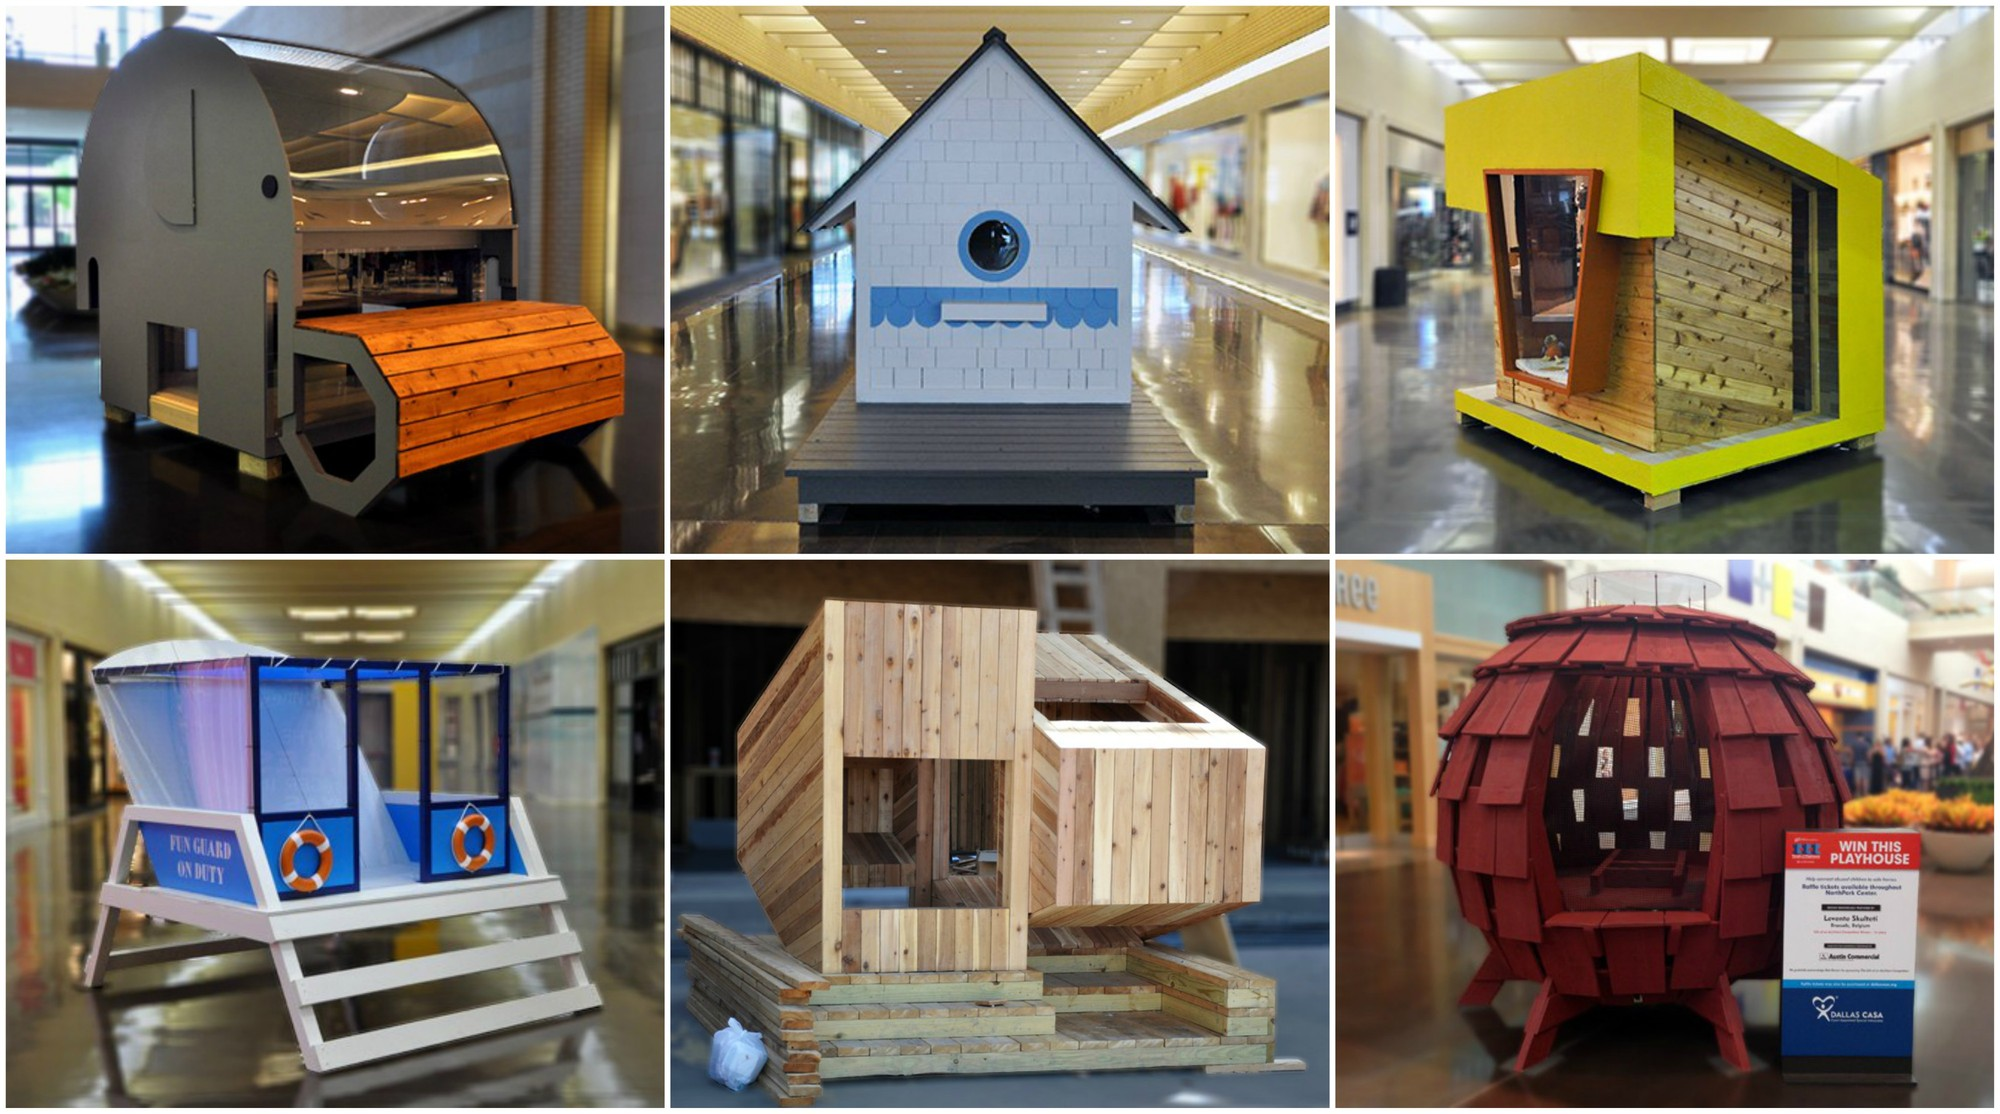 children architect playhouses competition charity archdaily money collage neglected raises architecture play